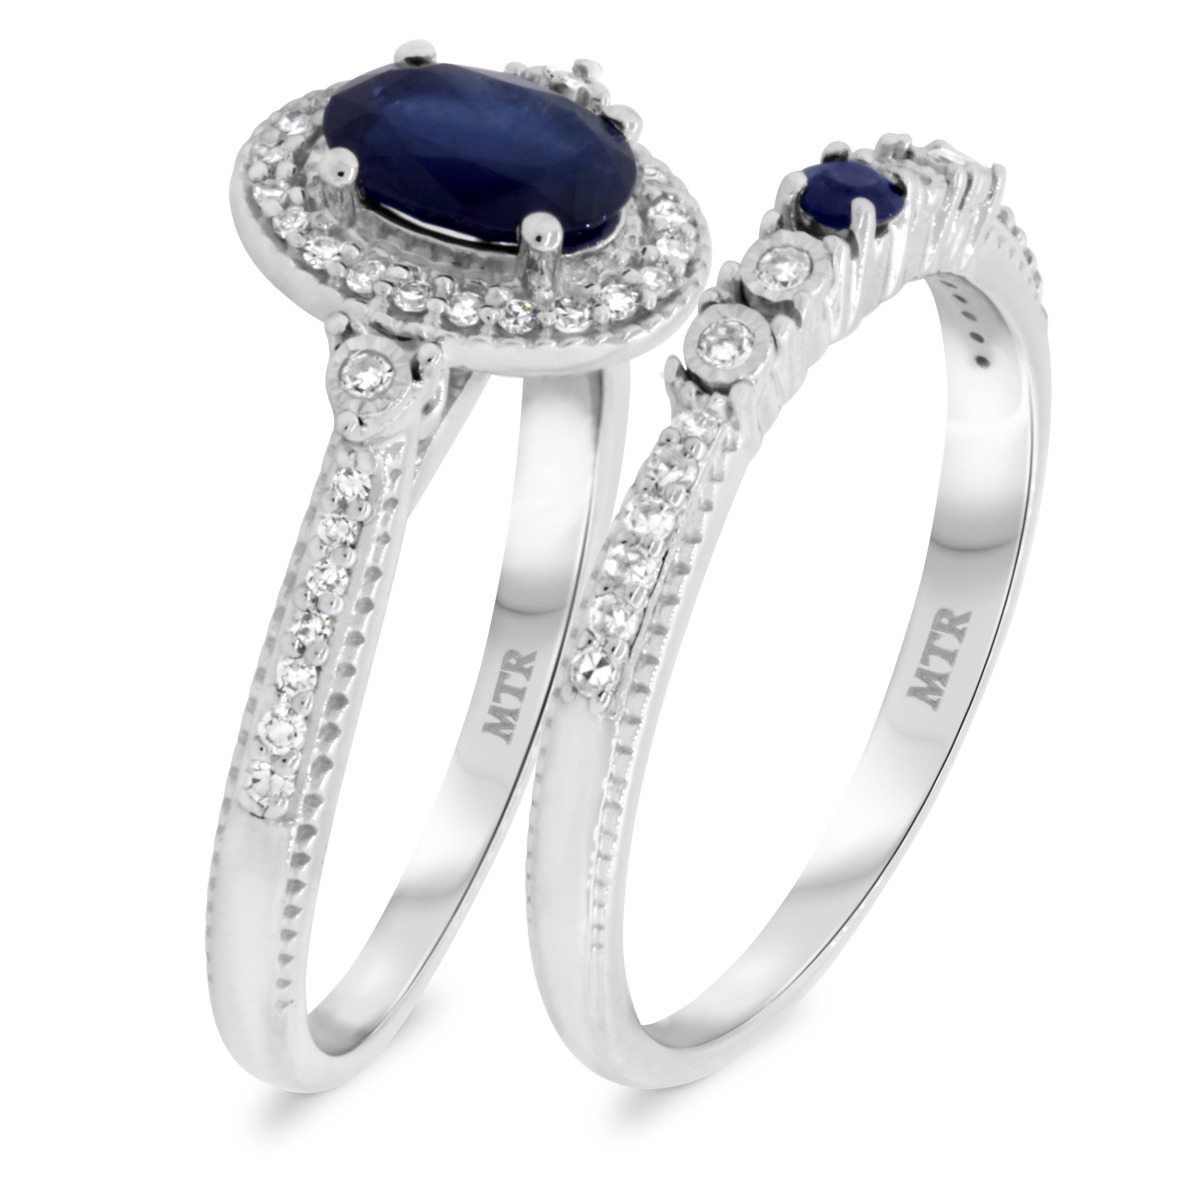 1 1/3 CT. T.W. Sapphire Matching Bridal Ring Set 14K White Gold